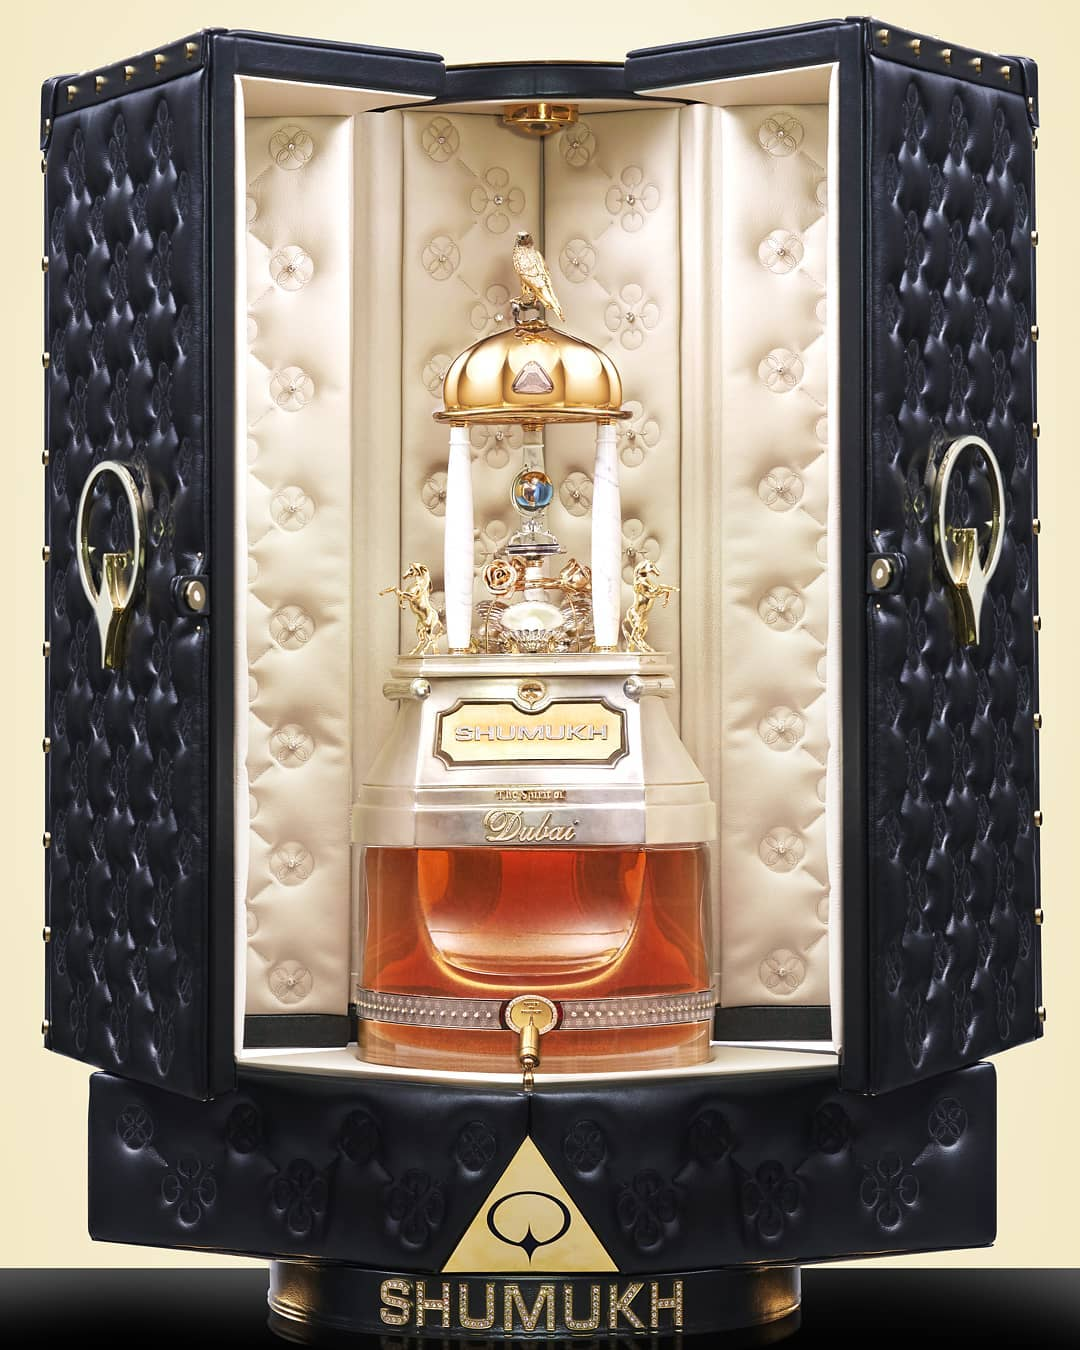 This Parfum is the most expensive in the world